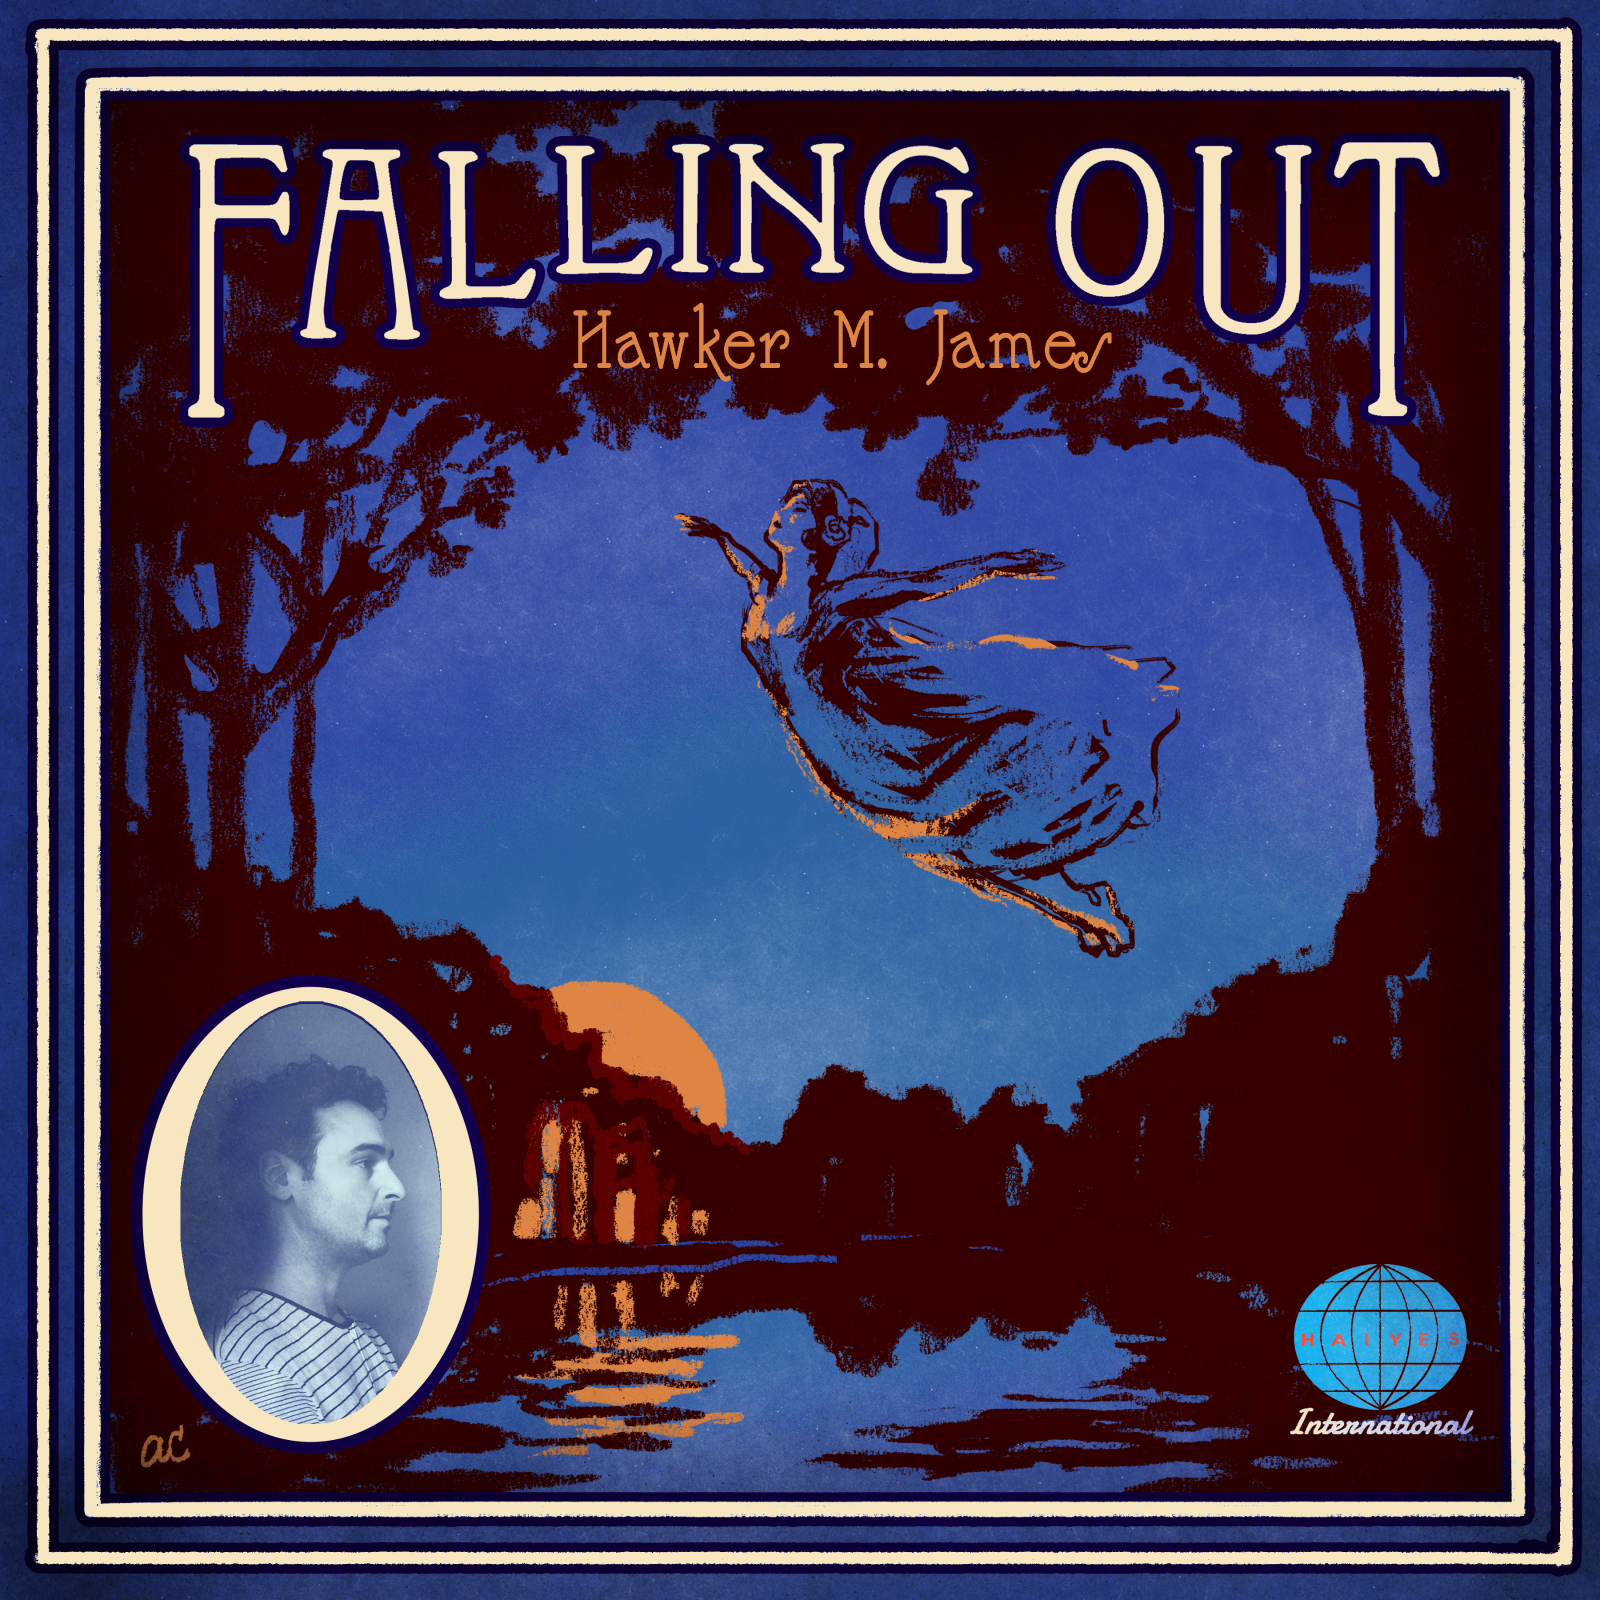 """Hawker M. James Releases New Single & Video, """"Falling Out,"""" Off Upcoming Album"""